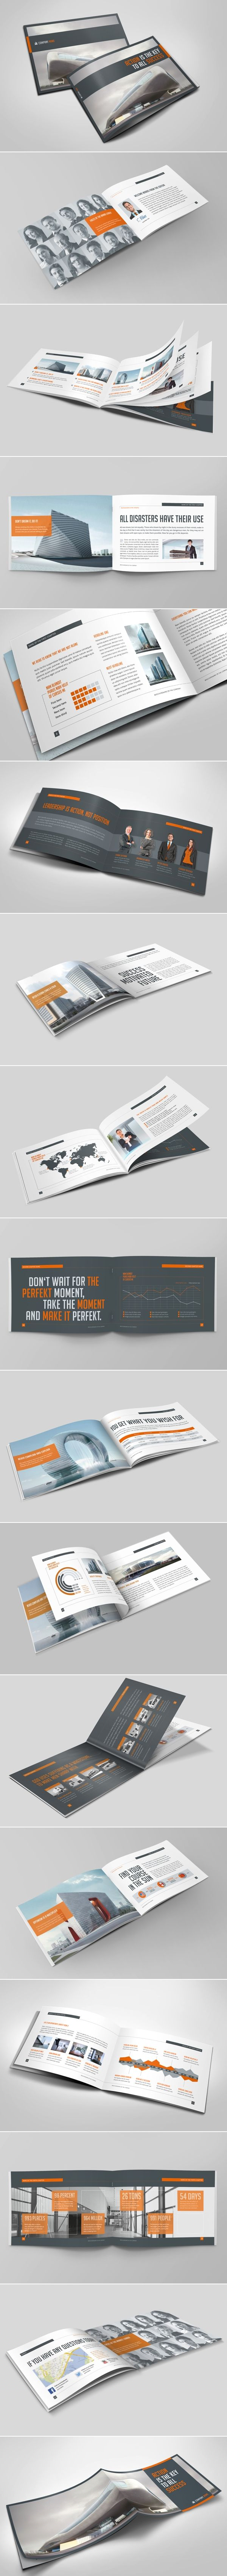 Business Horizontal Brochure. Contact BWD to design your brochure. www.bwd.co.za #BWDjhb